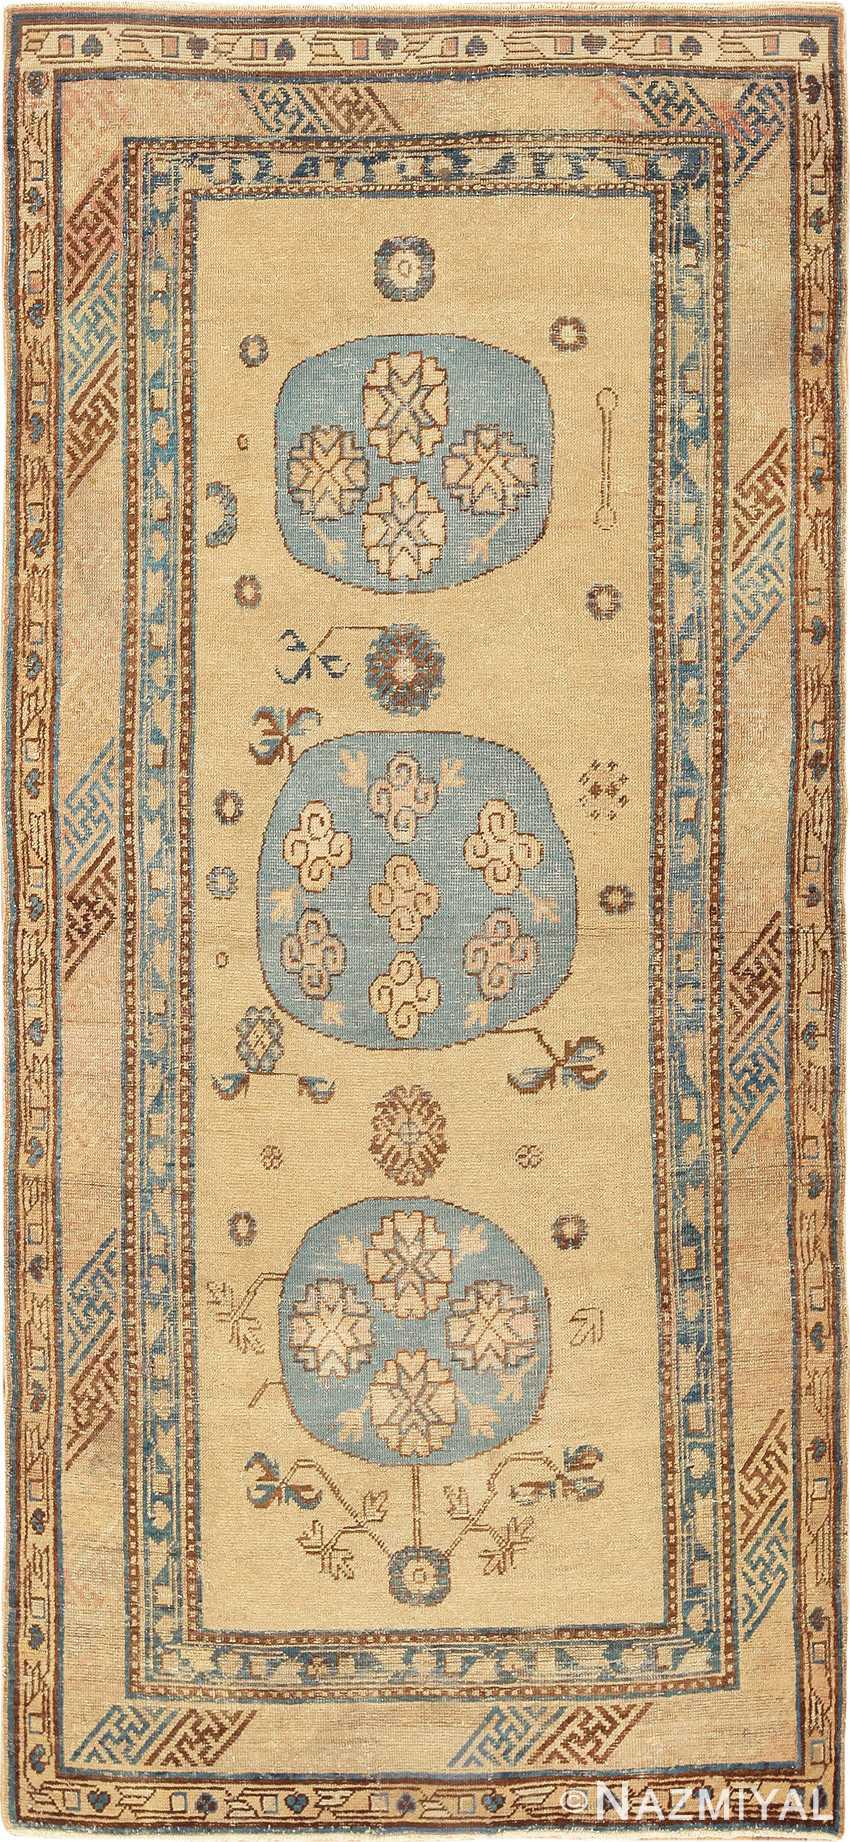 Small Antique Tan and Baby Blue Khotan Rug - Nazmiyal